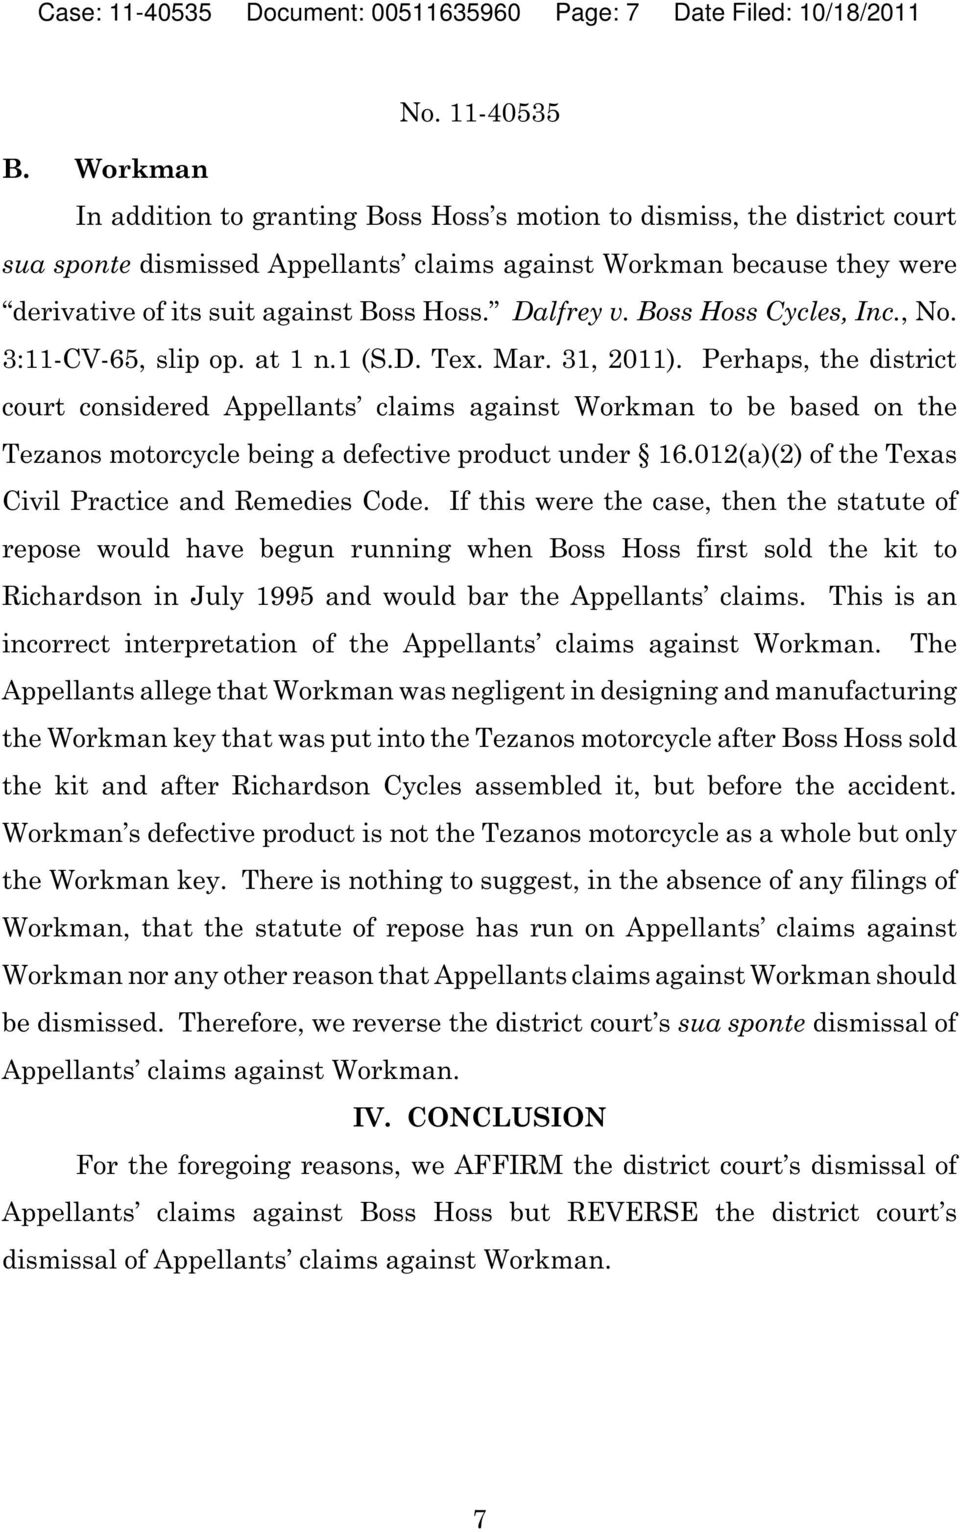 Dalfrey v. Boss Hoss Cycles, Inc., No. 3:11-CV-65, slip op. at 1 n.1 (S.D. Tex. Mar. 31, 2011).